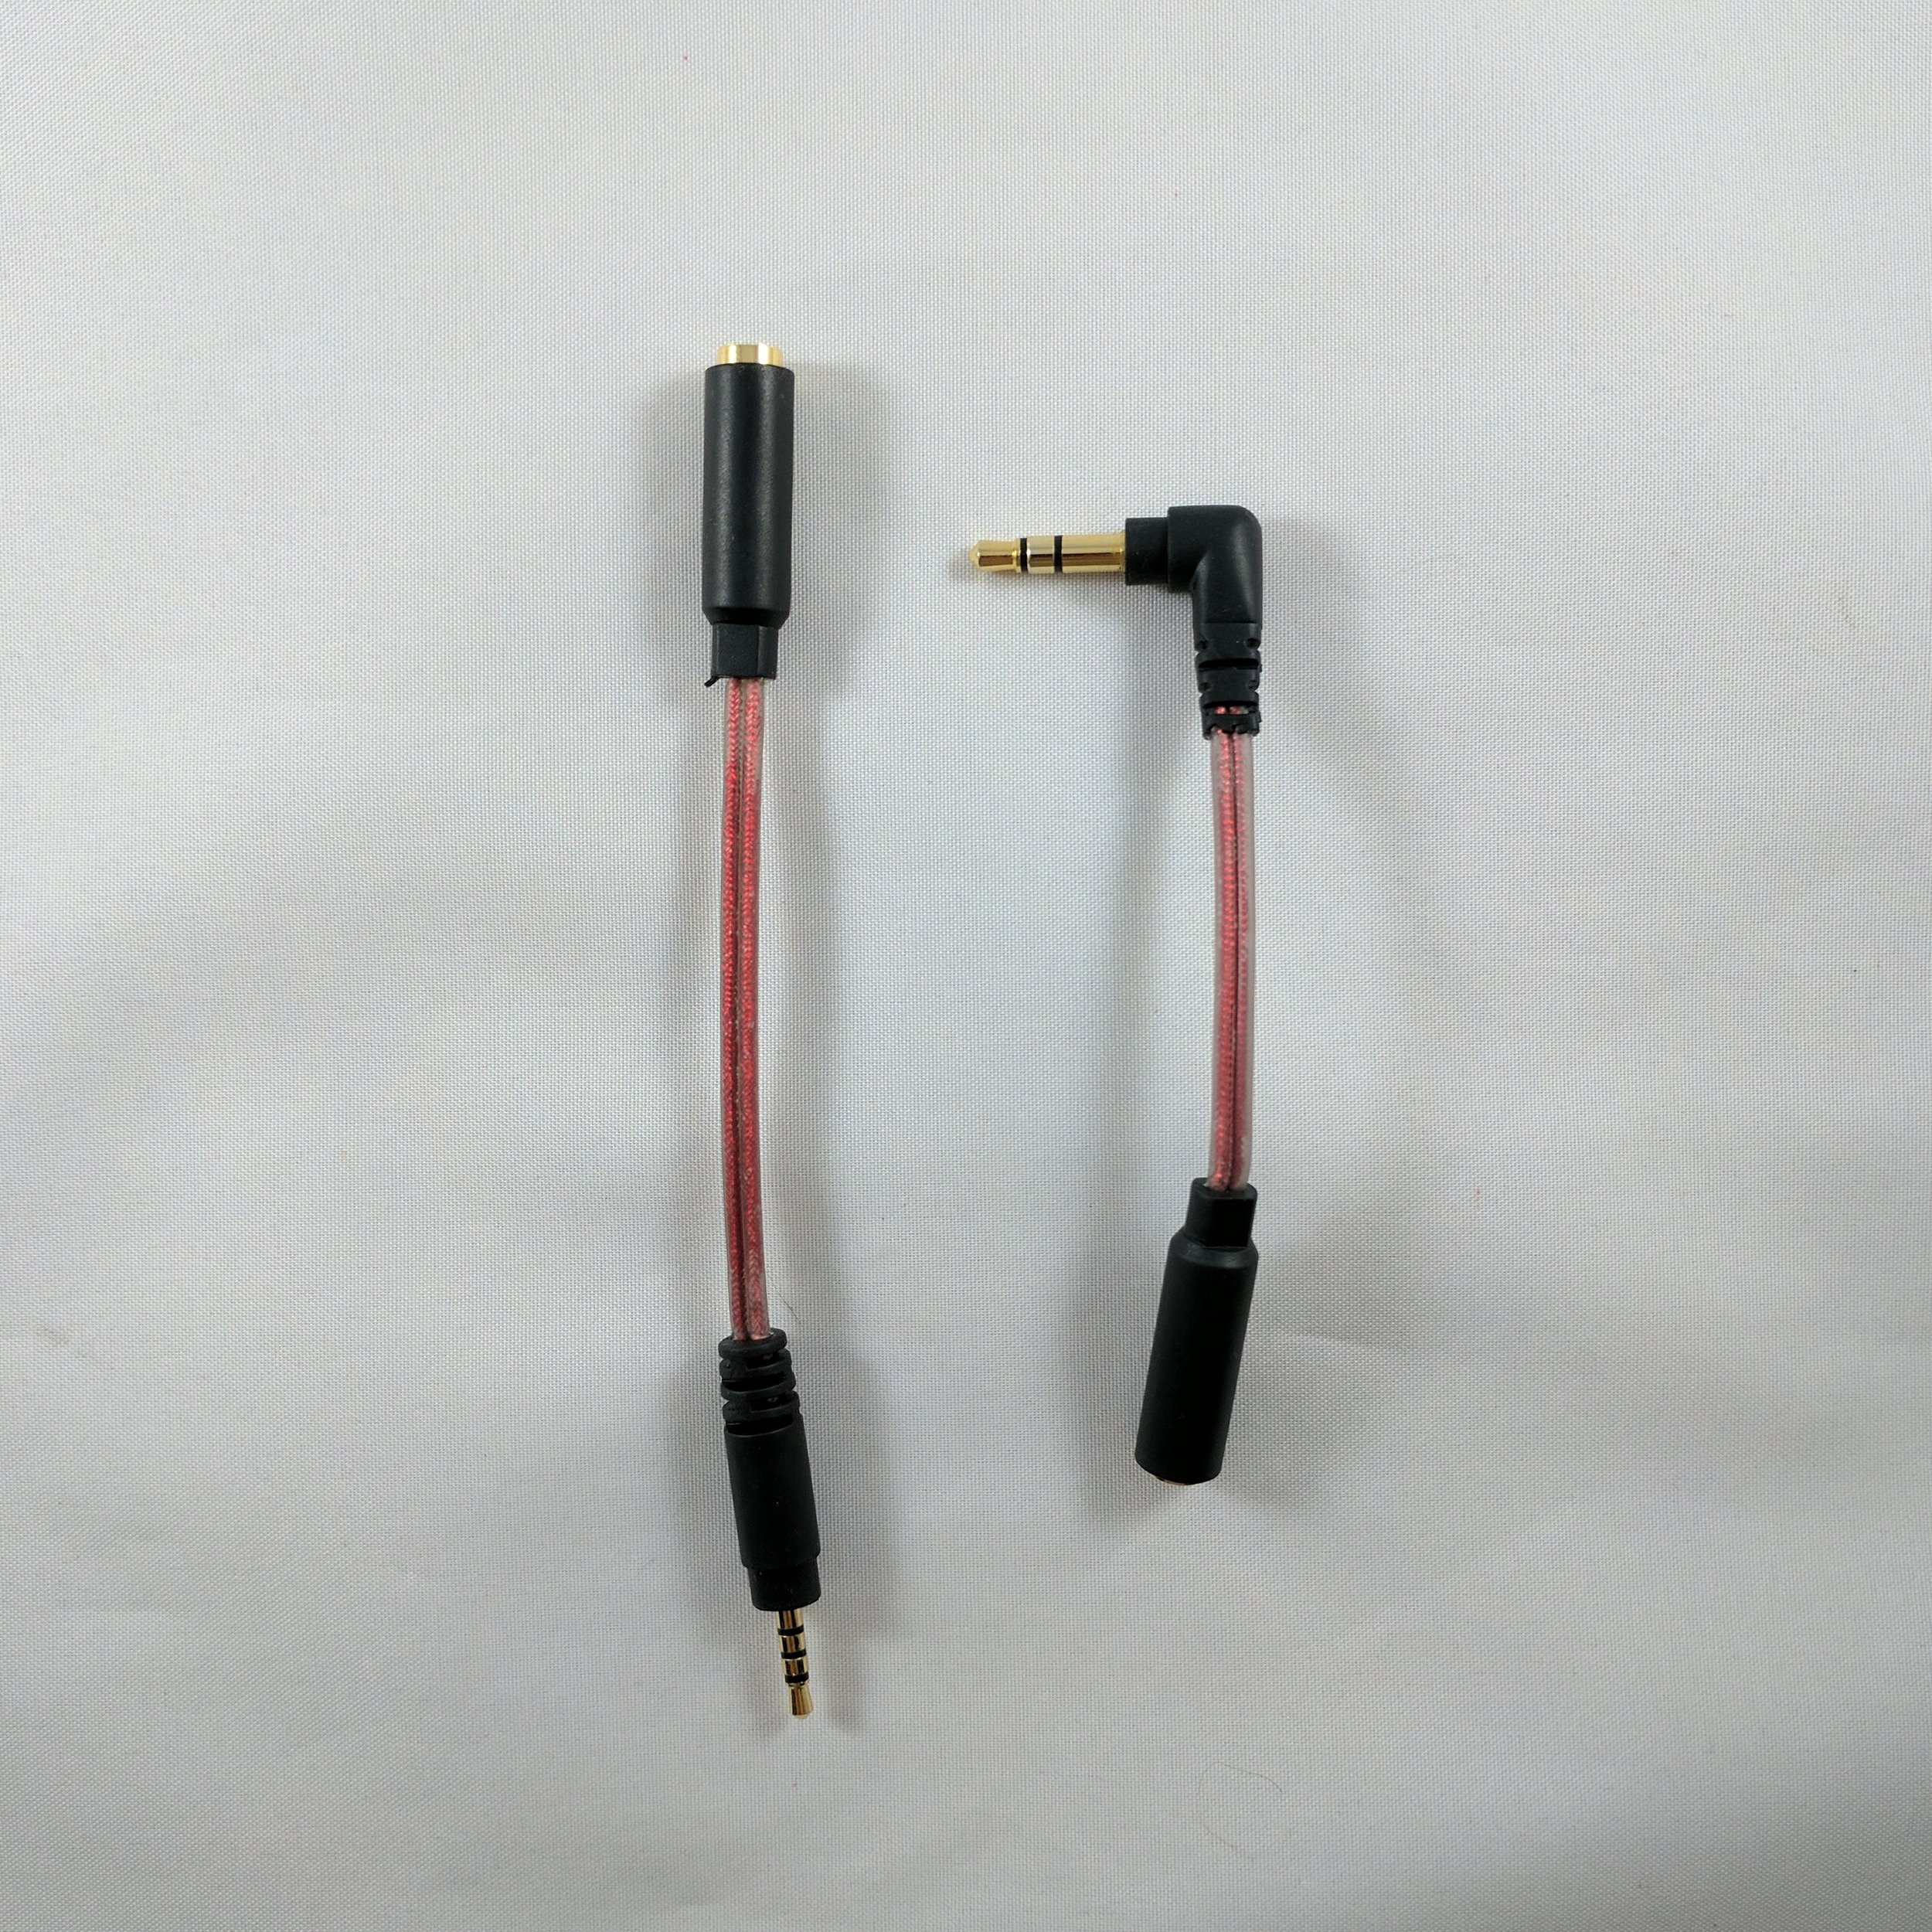 2 Cable Adapters.jpg